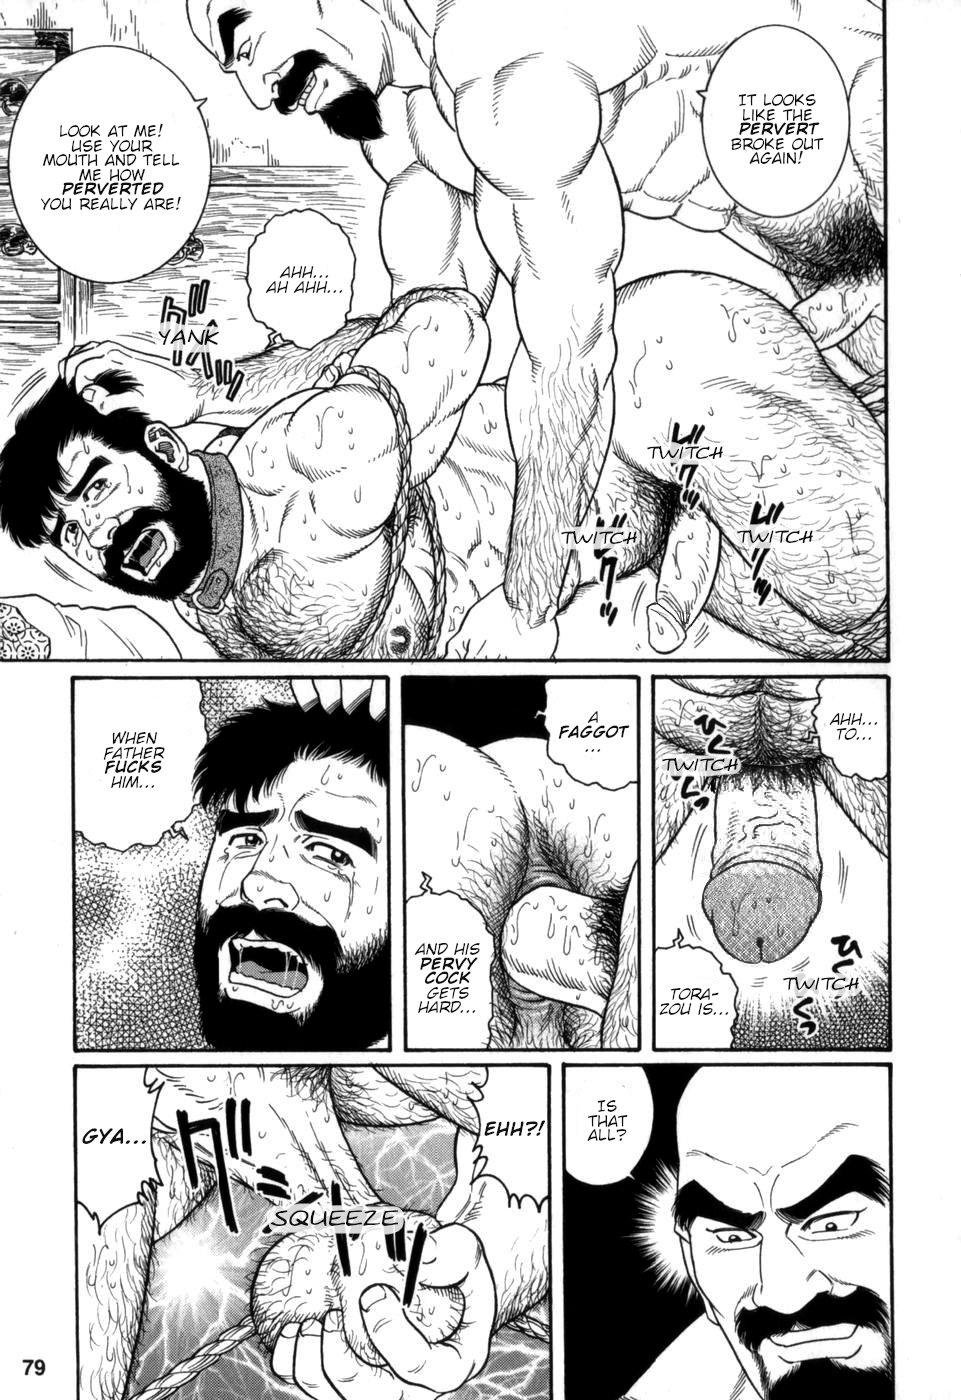 Gedou no Ie Chuukan | House of Brutes Vol. 2 Ch. 3 8